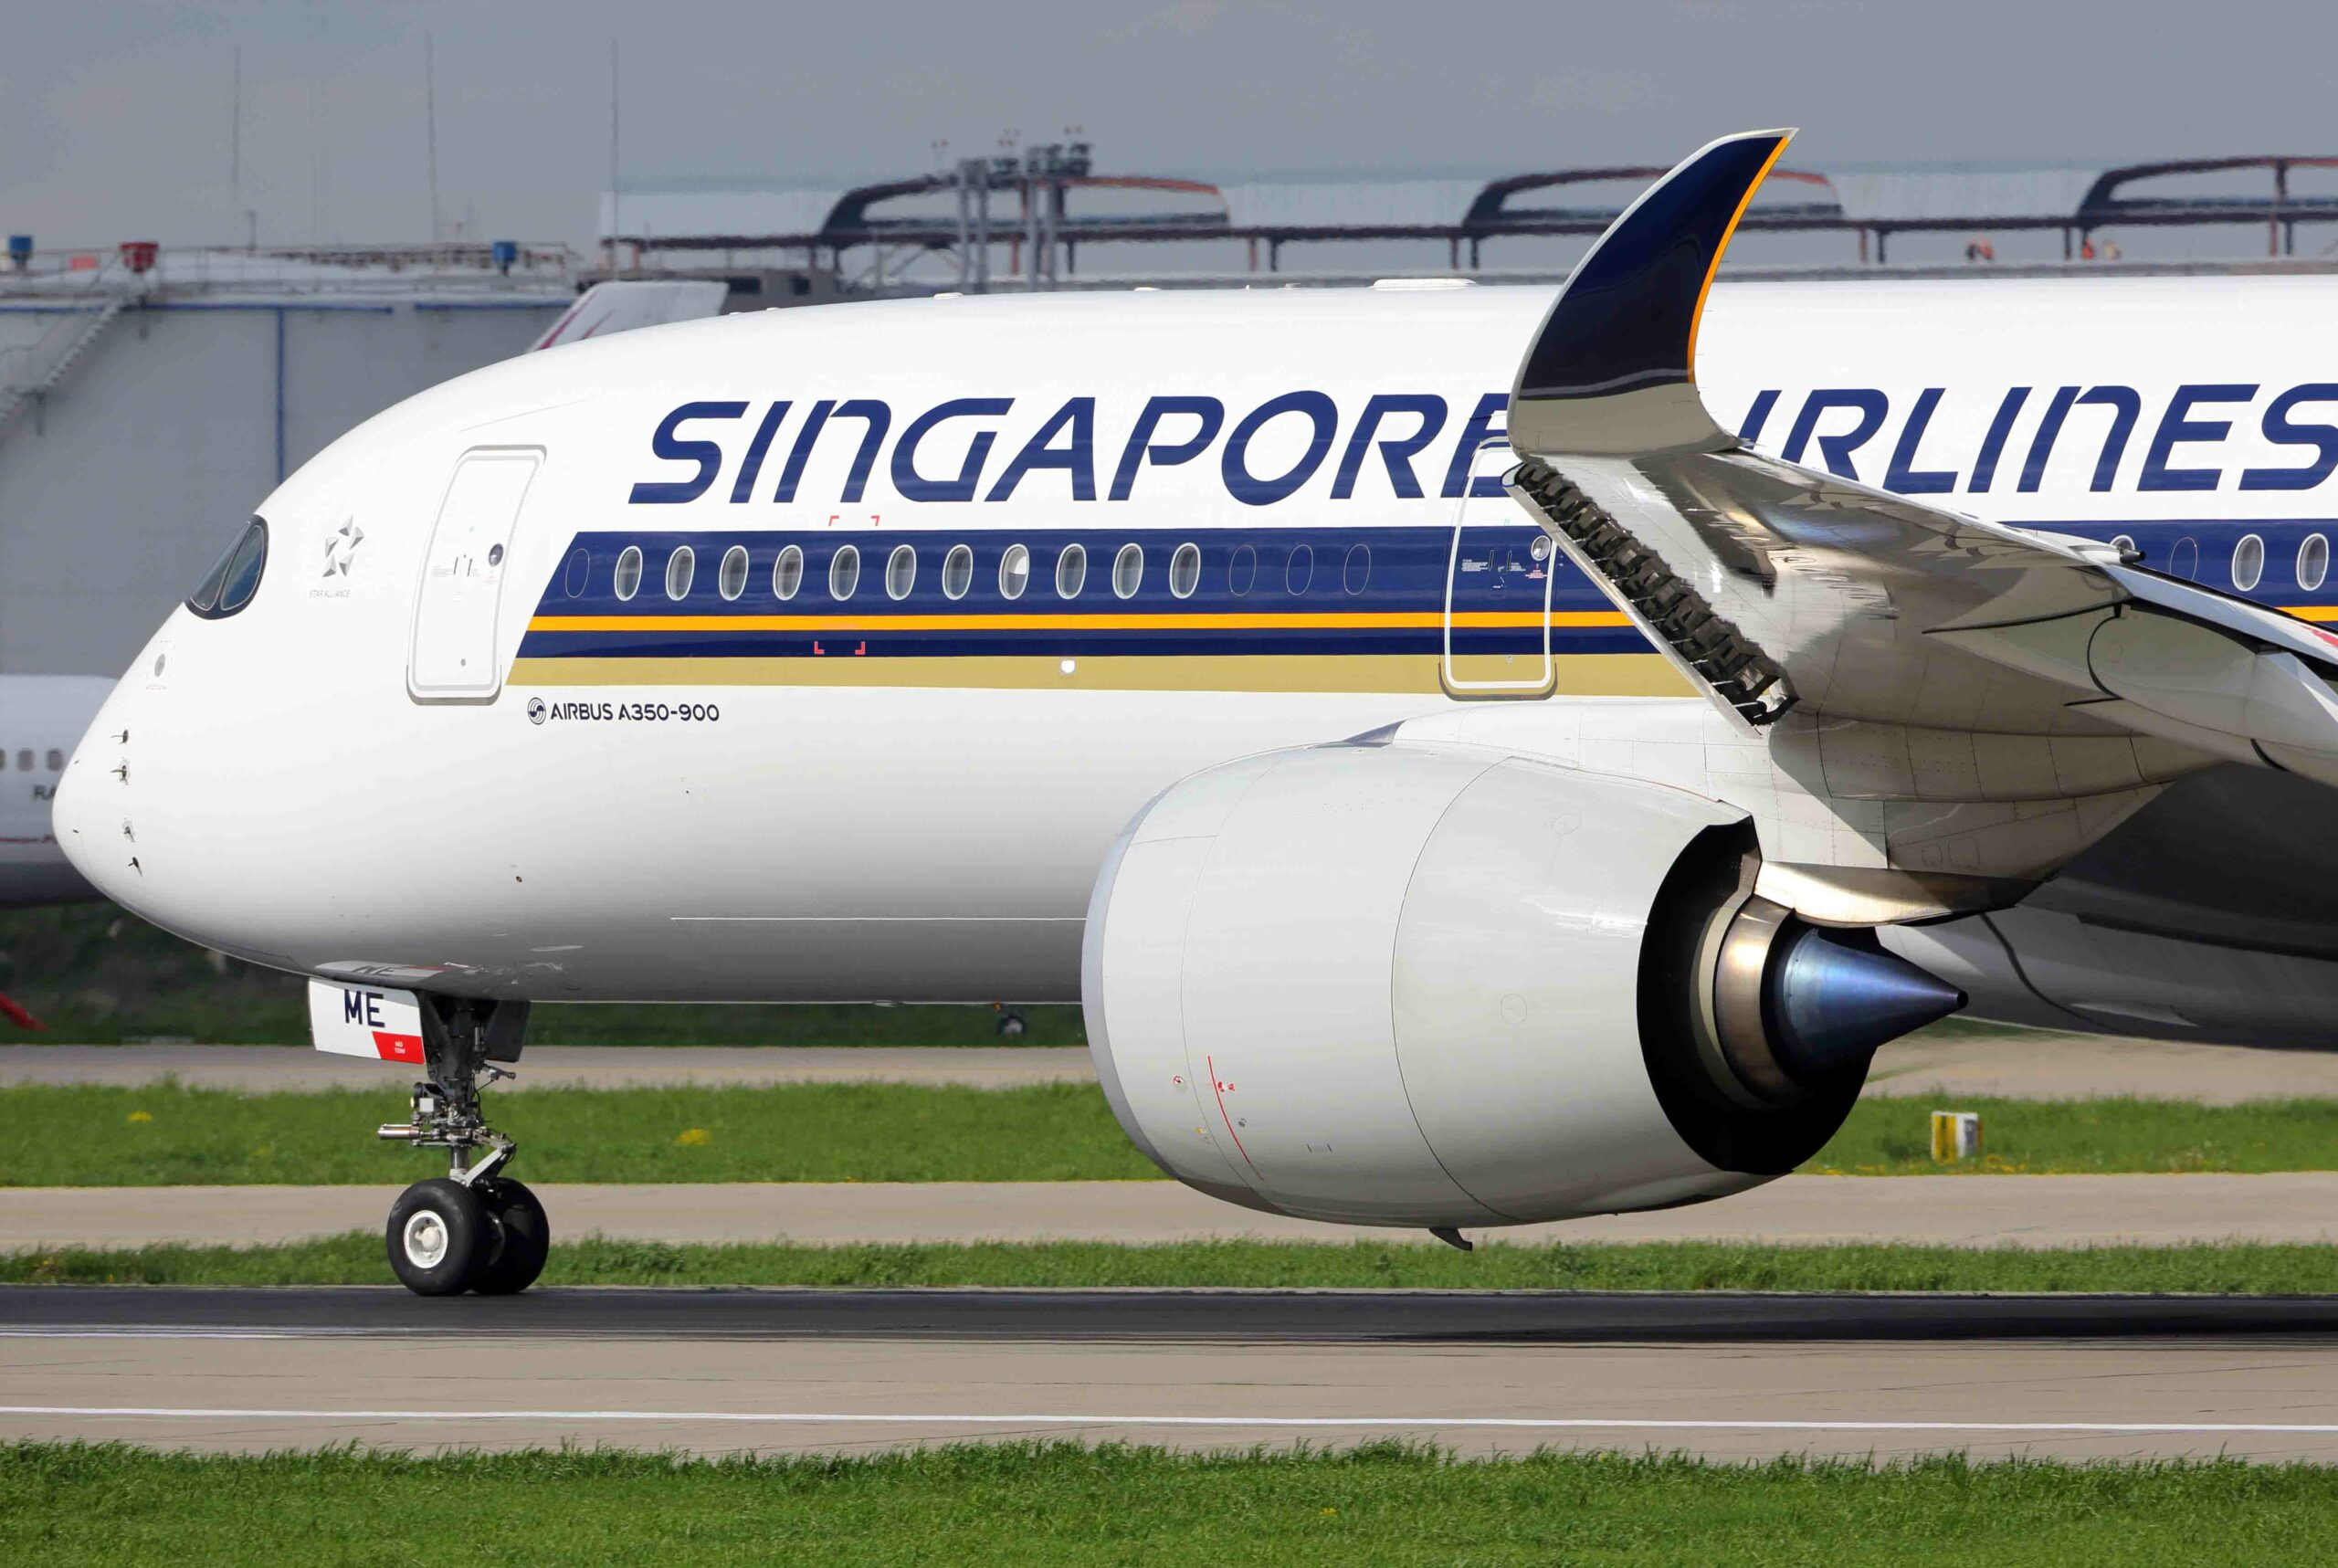 SIA Group First Quarter Net Loss reduced To $409 Million Atlas Logistic Network